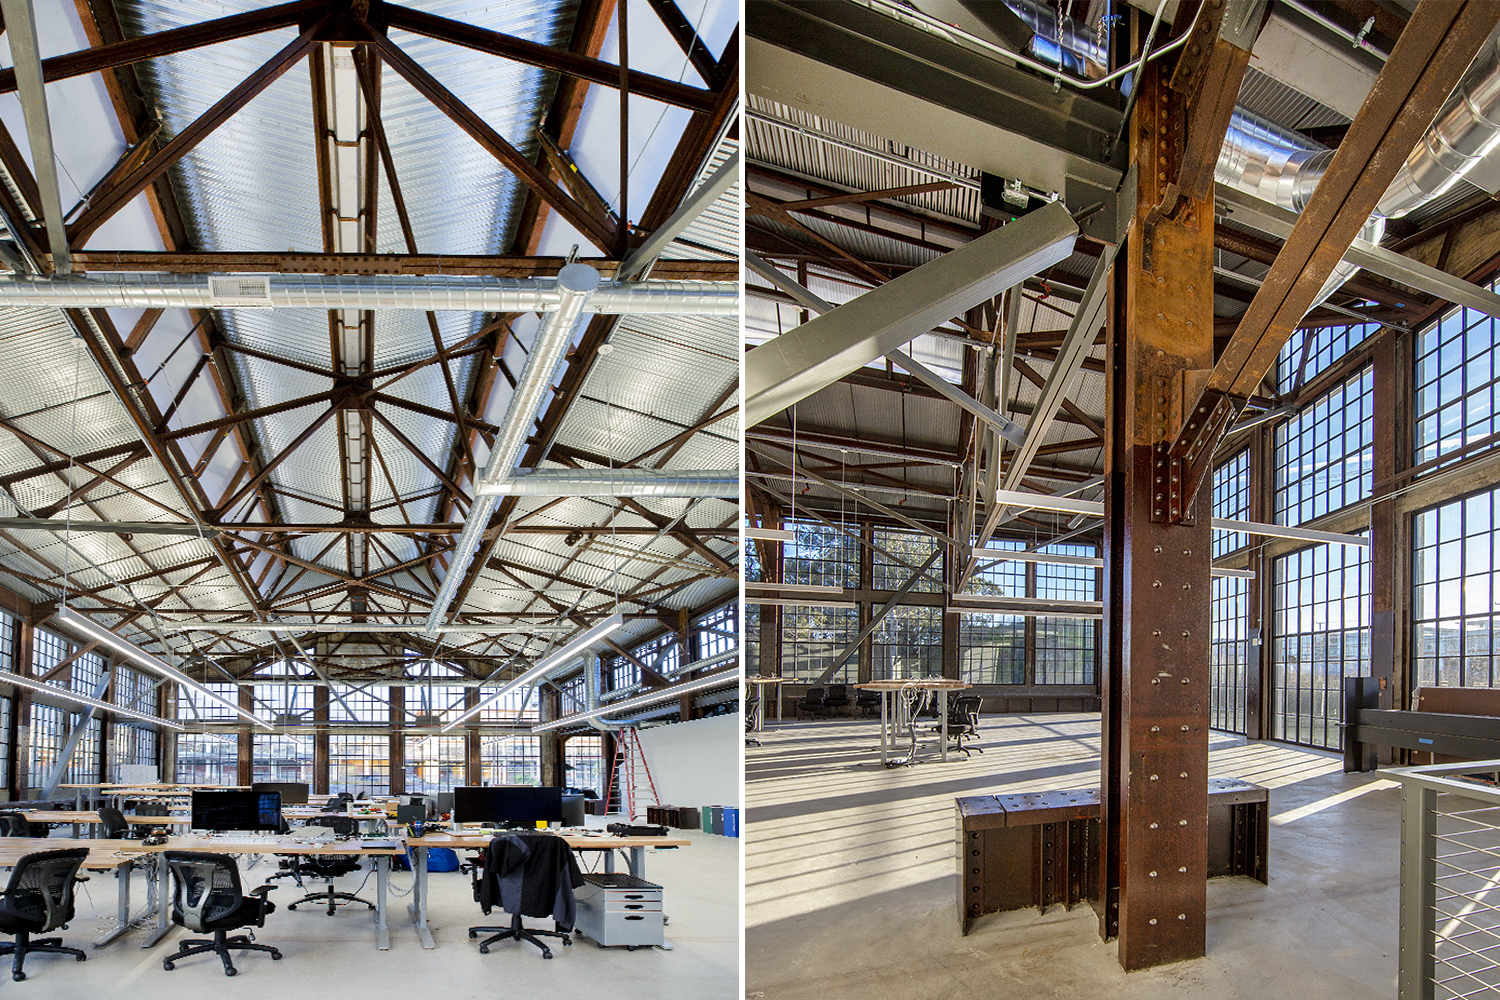 07_Projects_Adaptive Reuse of Historic Pier 70.jpg